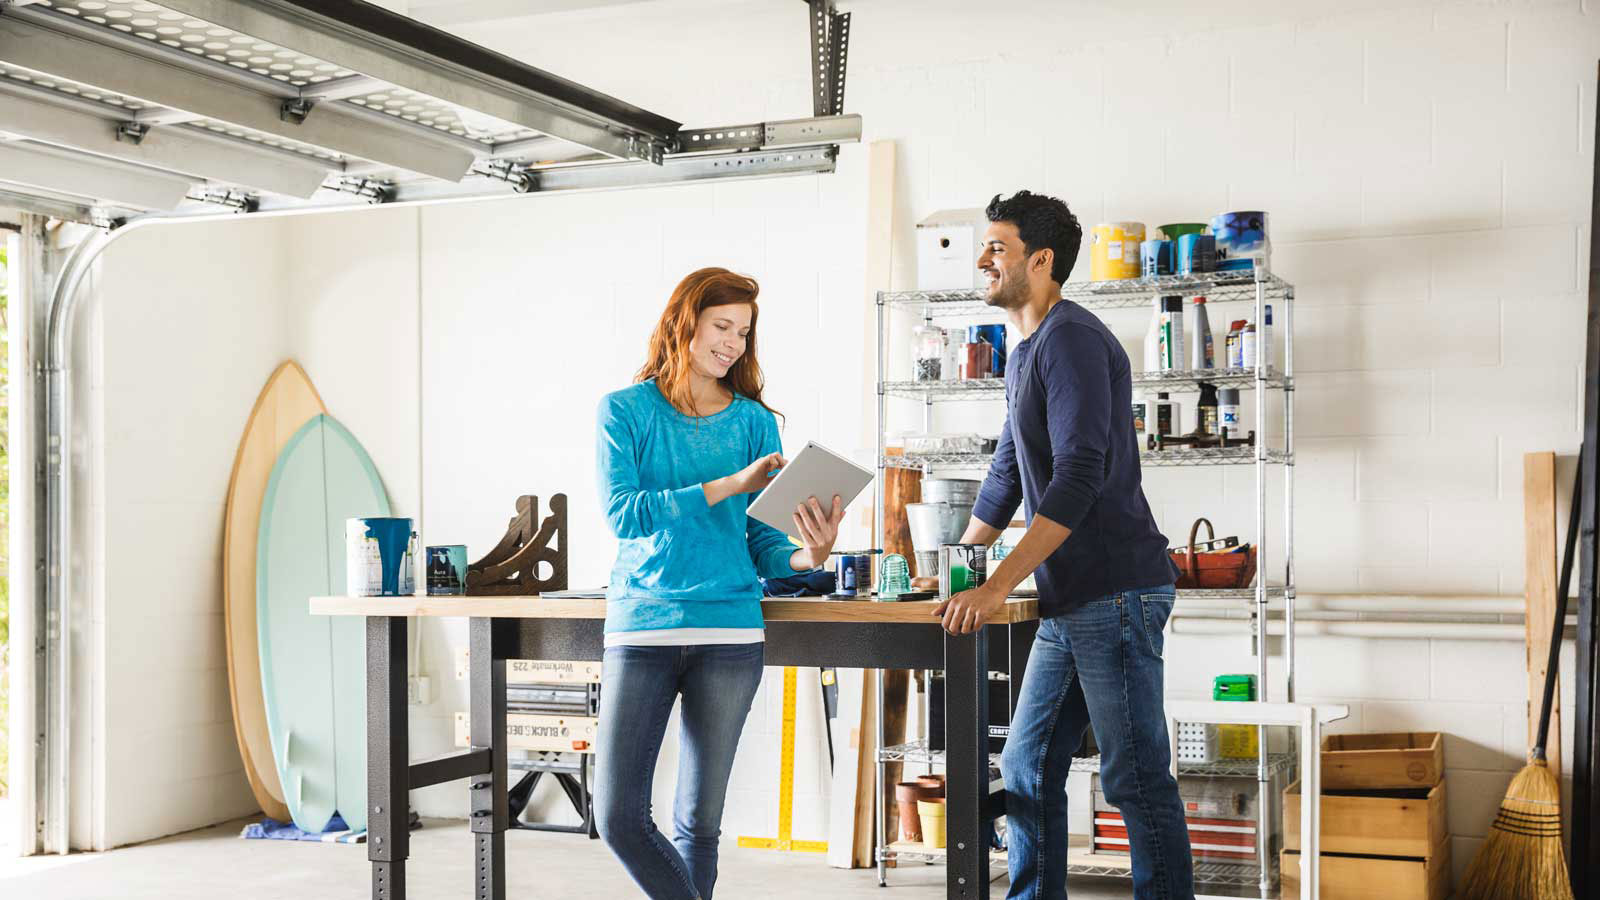 Happy man and woman talking while standing in a home garage and looking at a tablet.